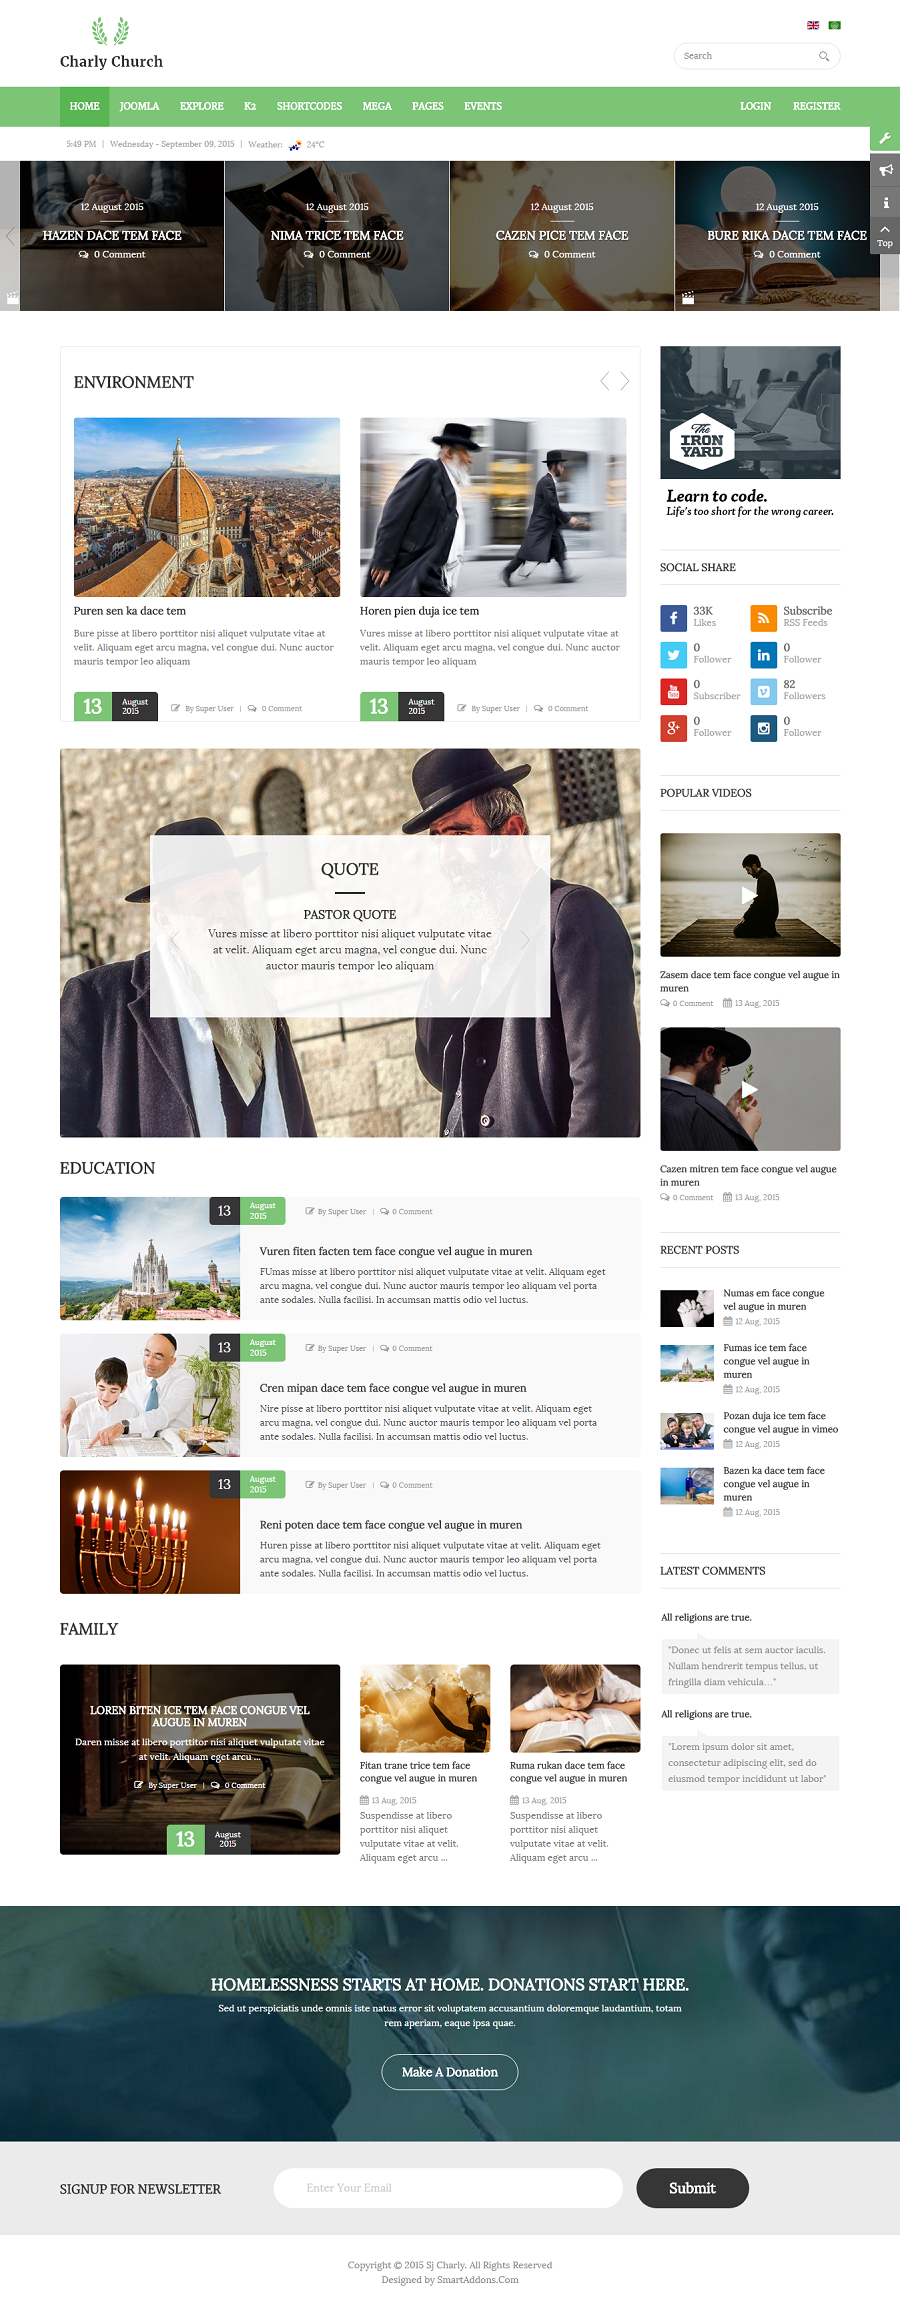 SJ Charly - Responsive Joomla Church Template - 03_index2.png